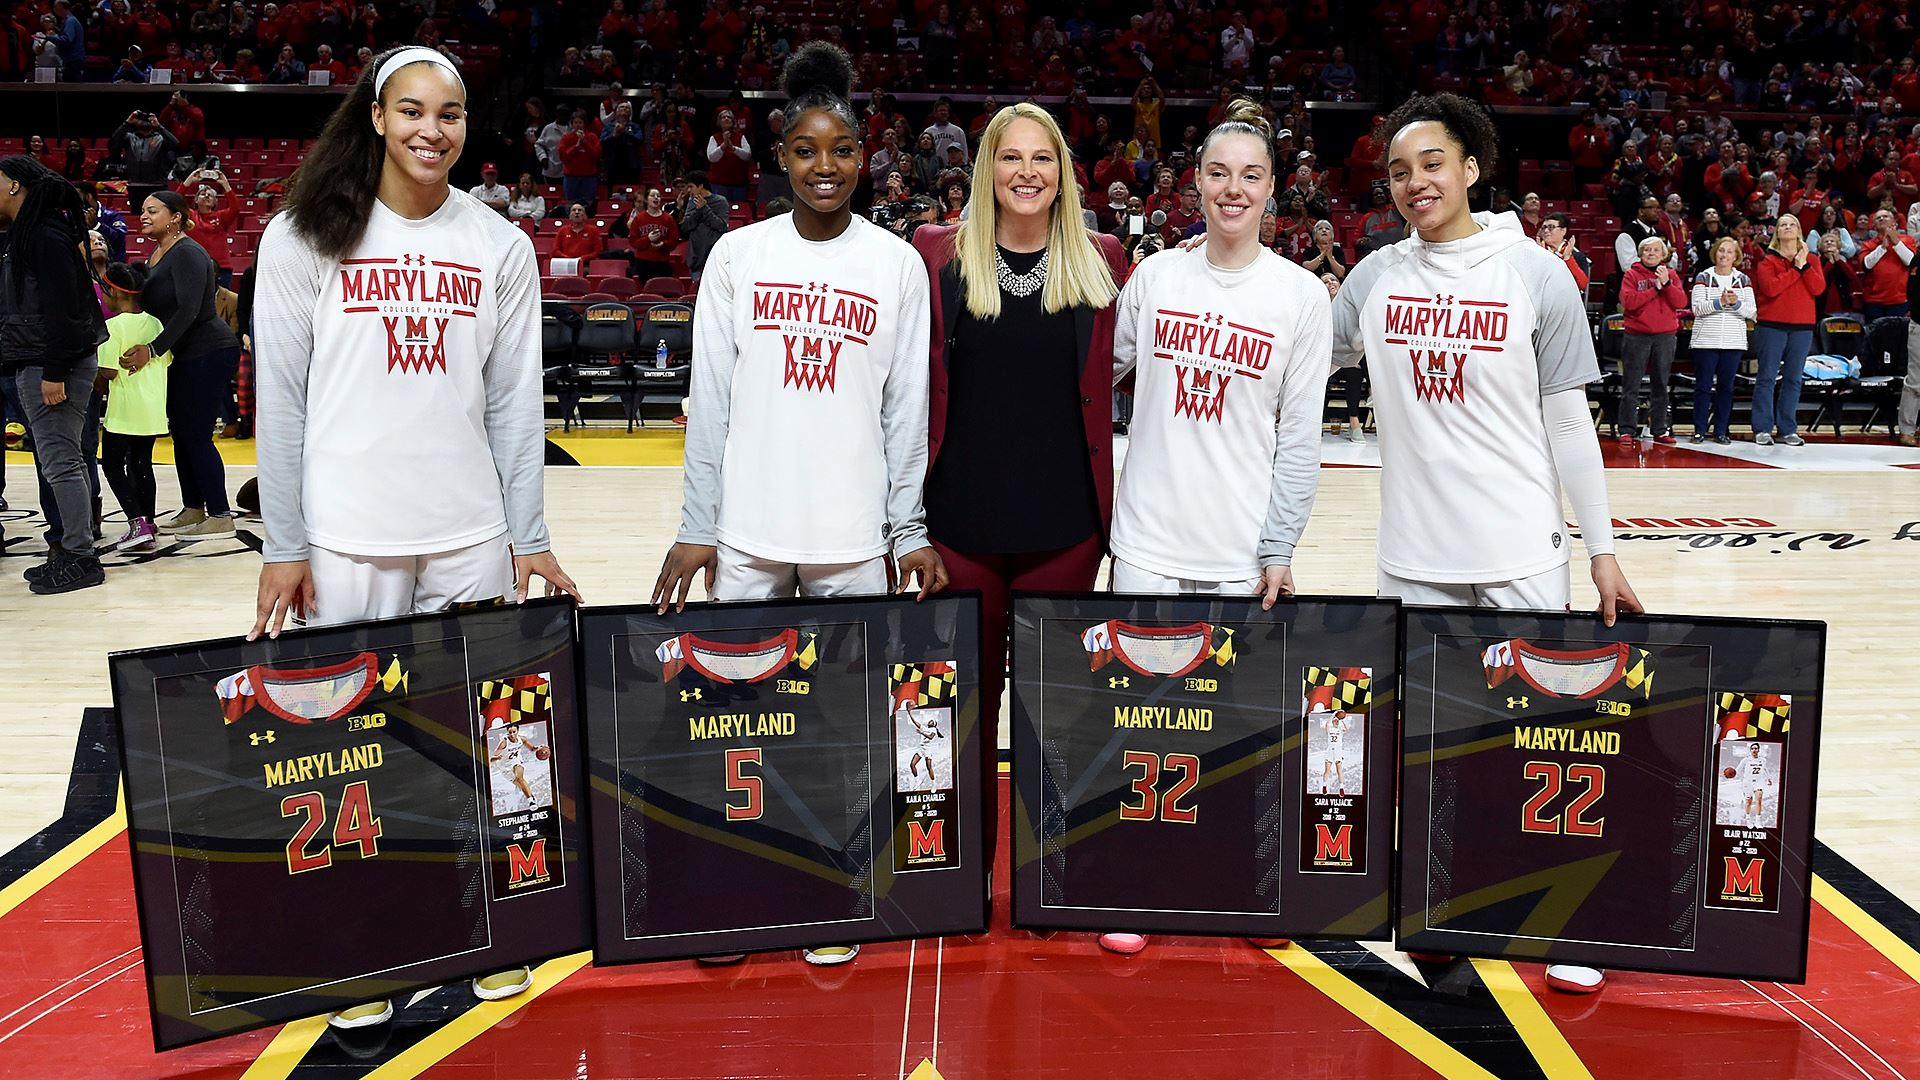 Maryland continues to roll, tops Purdue 88-45 on Senior Night